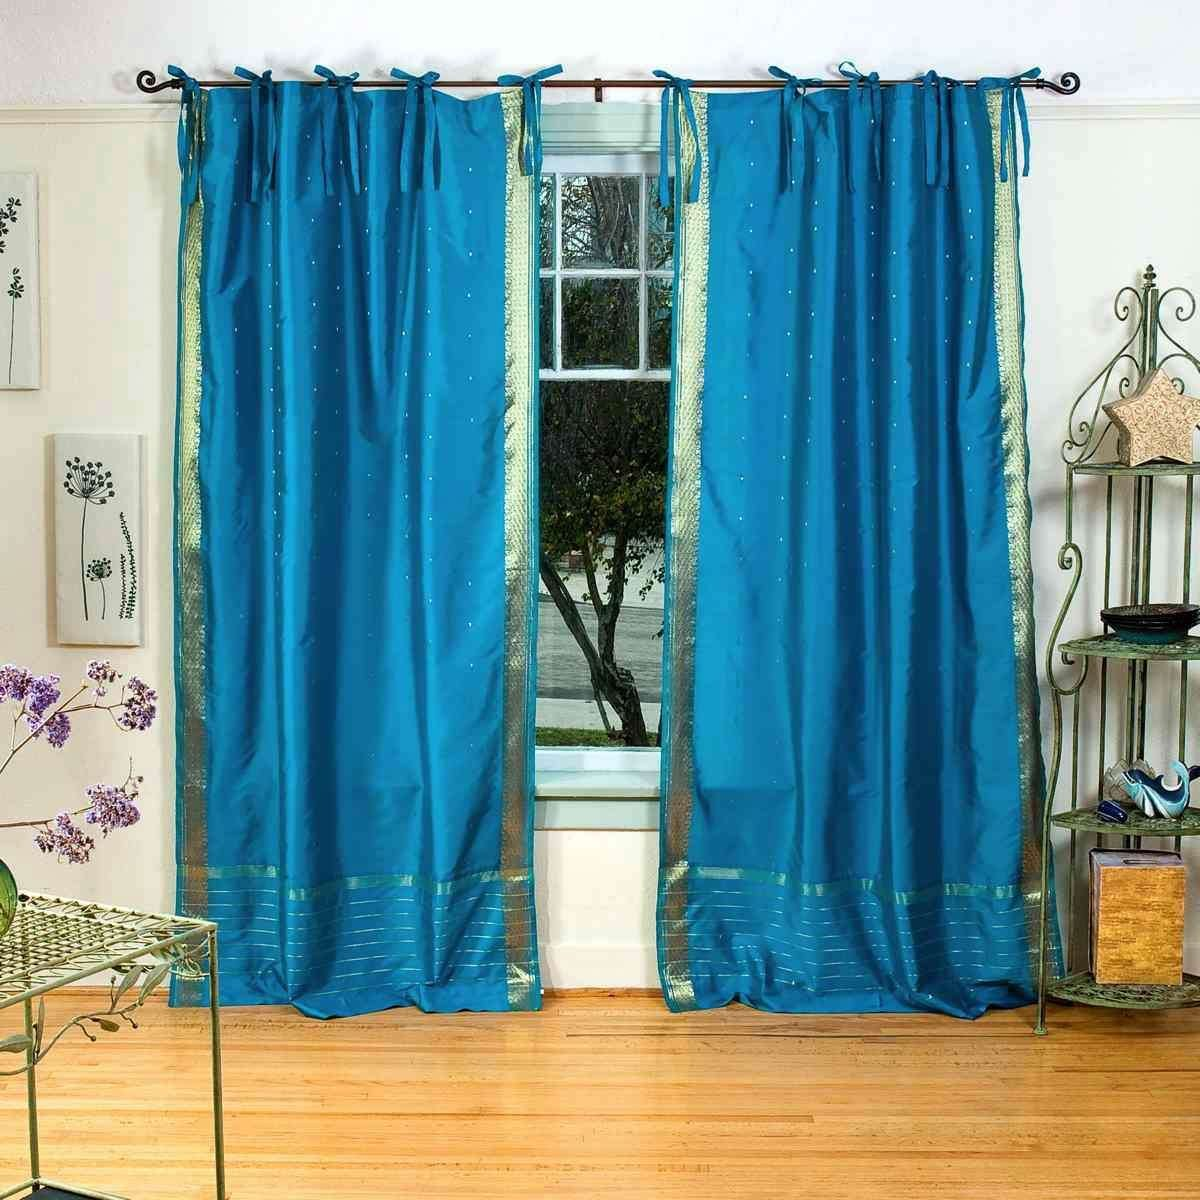 Turquoise Tie Top Sheer Sari Curtain Drape Panel